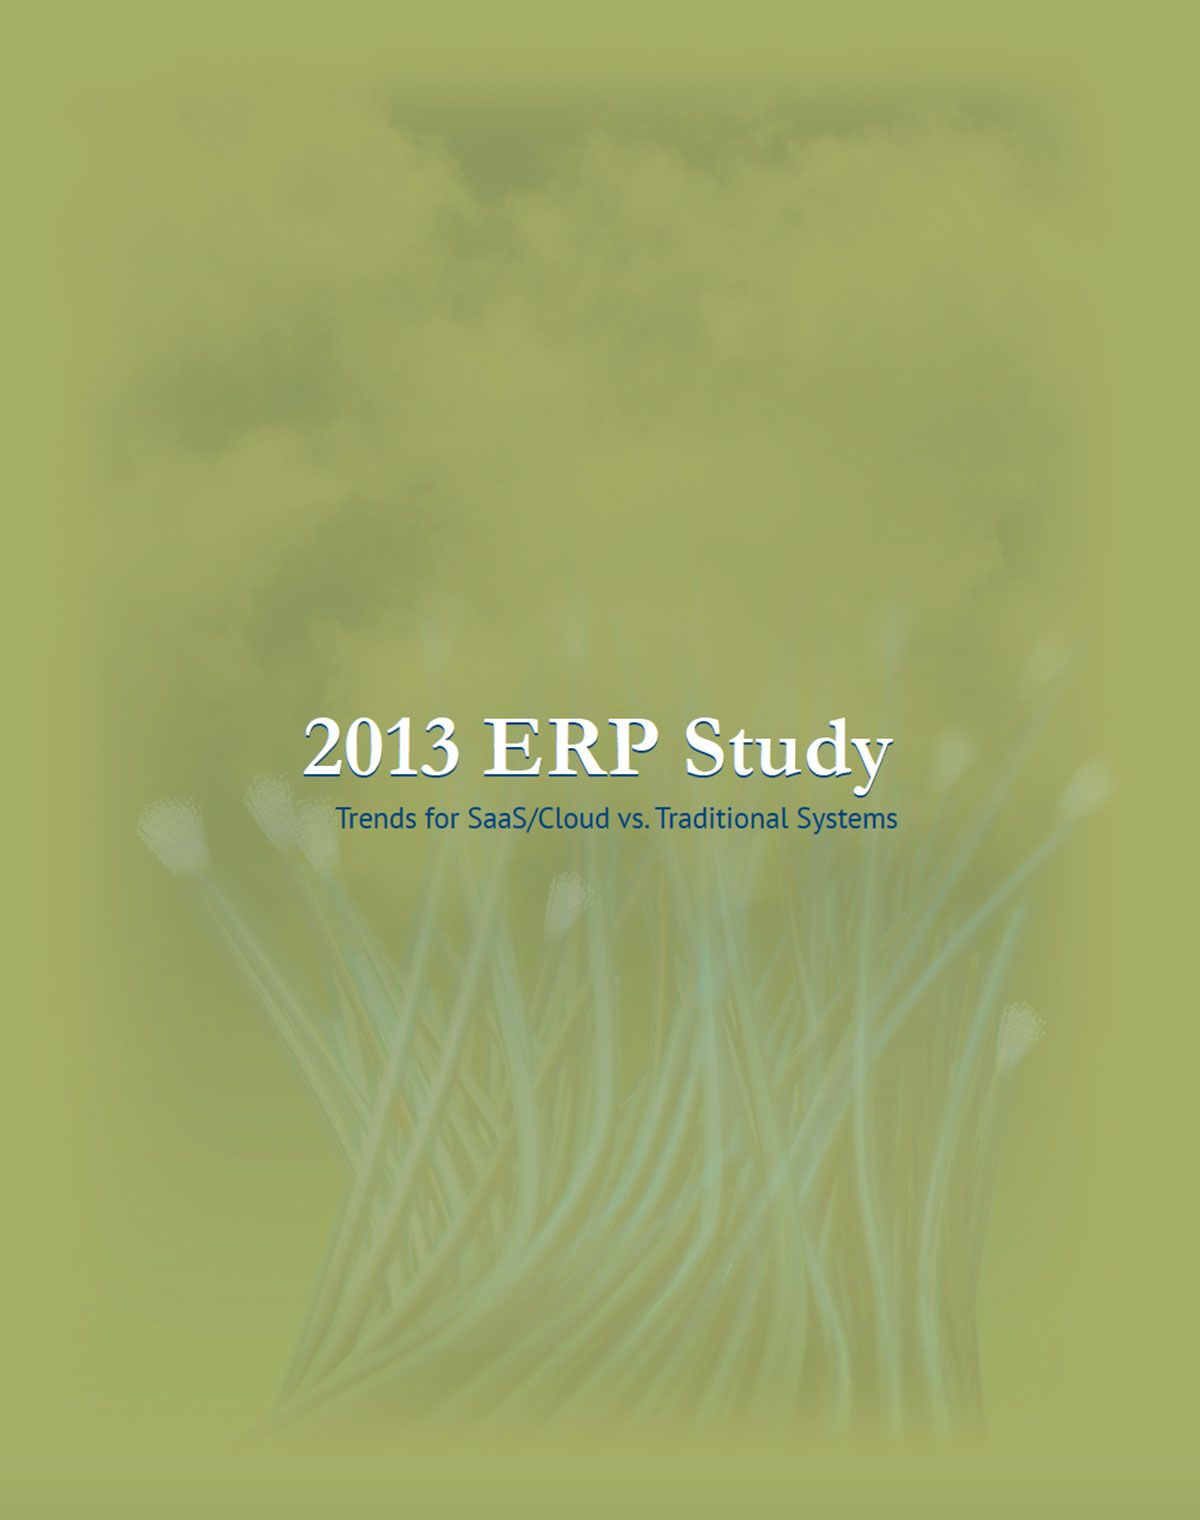 2013 ERP Study: Trends for SaaS/Cloud vs. Traditional Systems